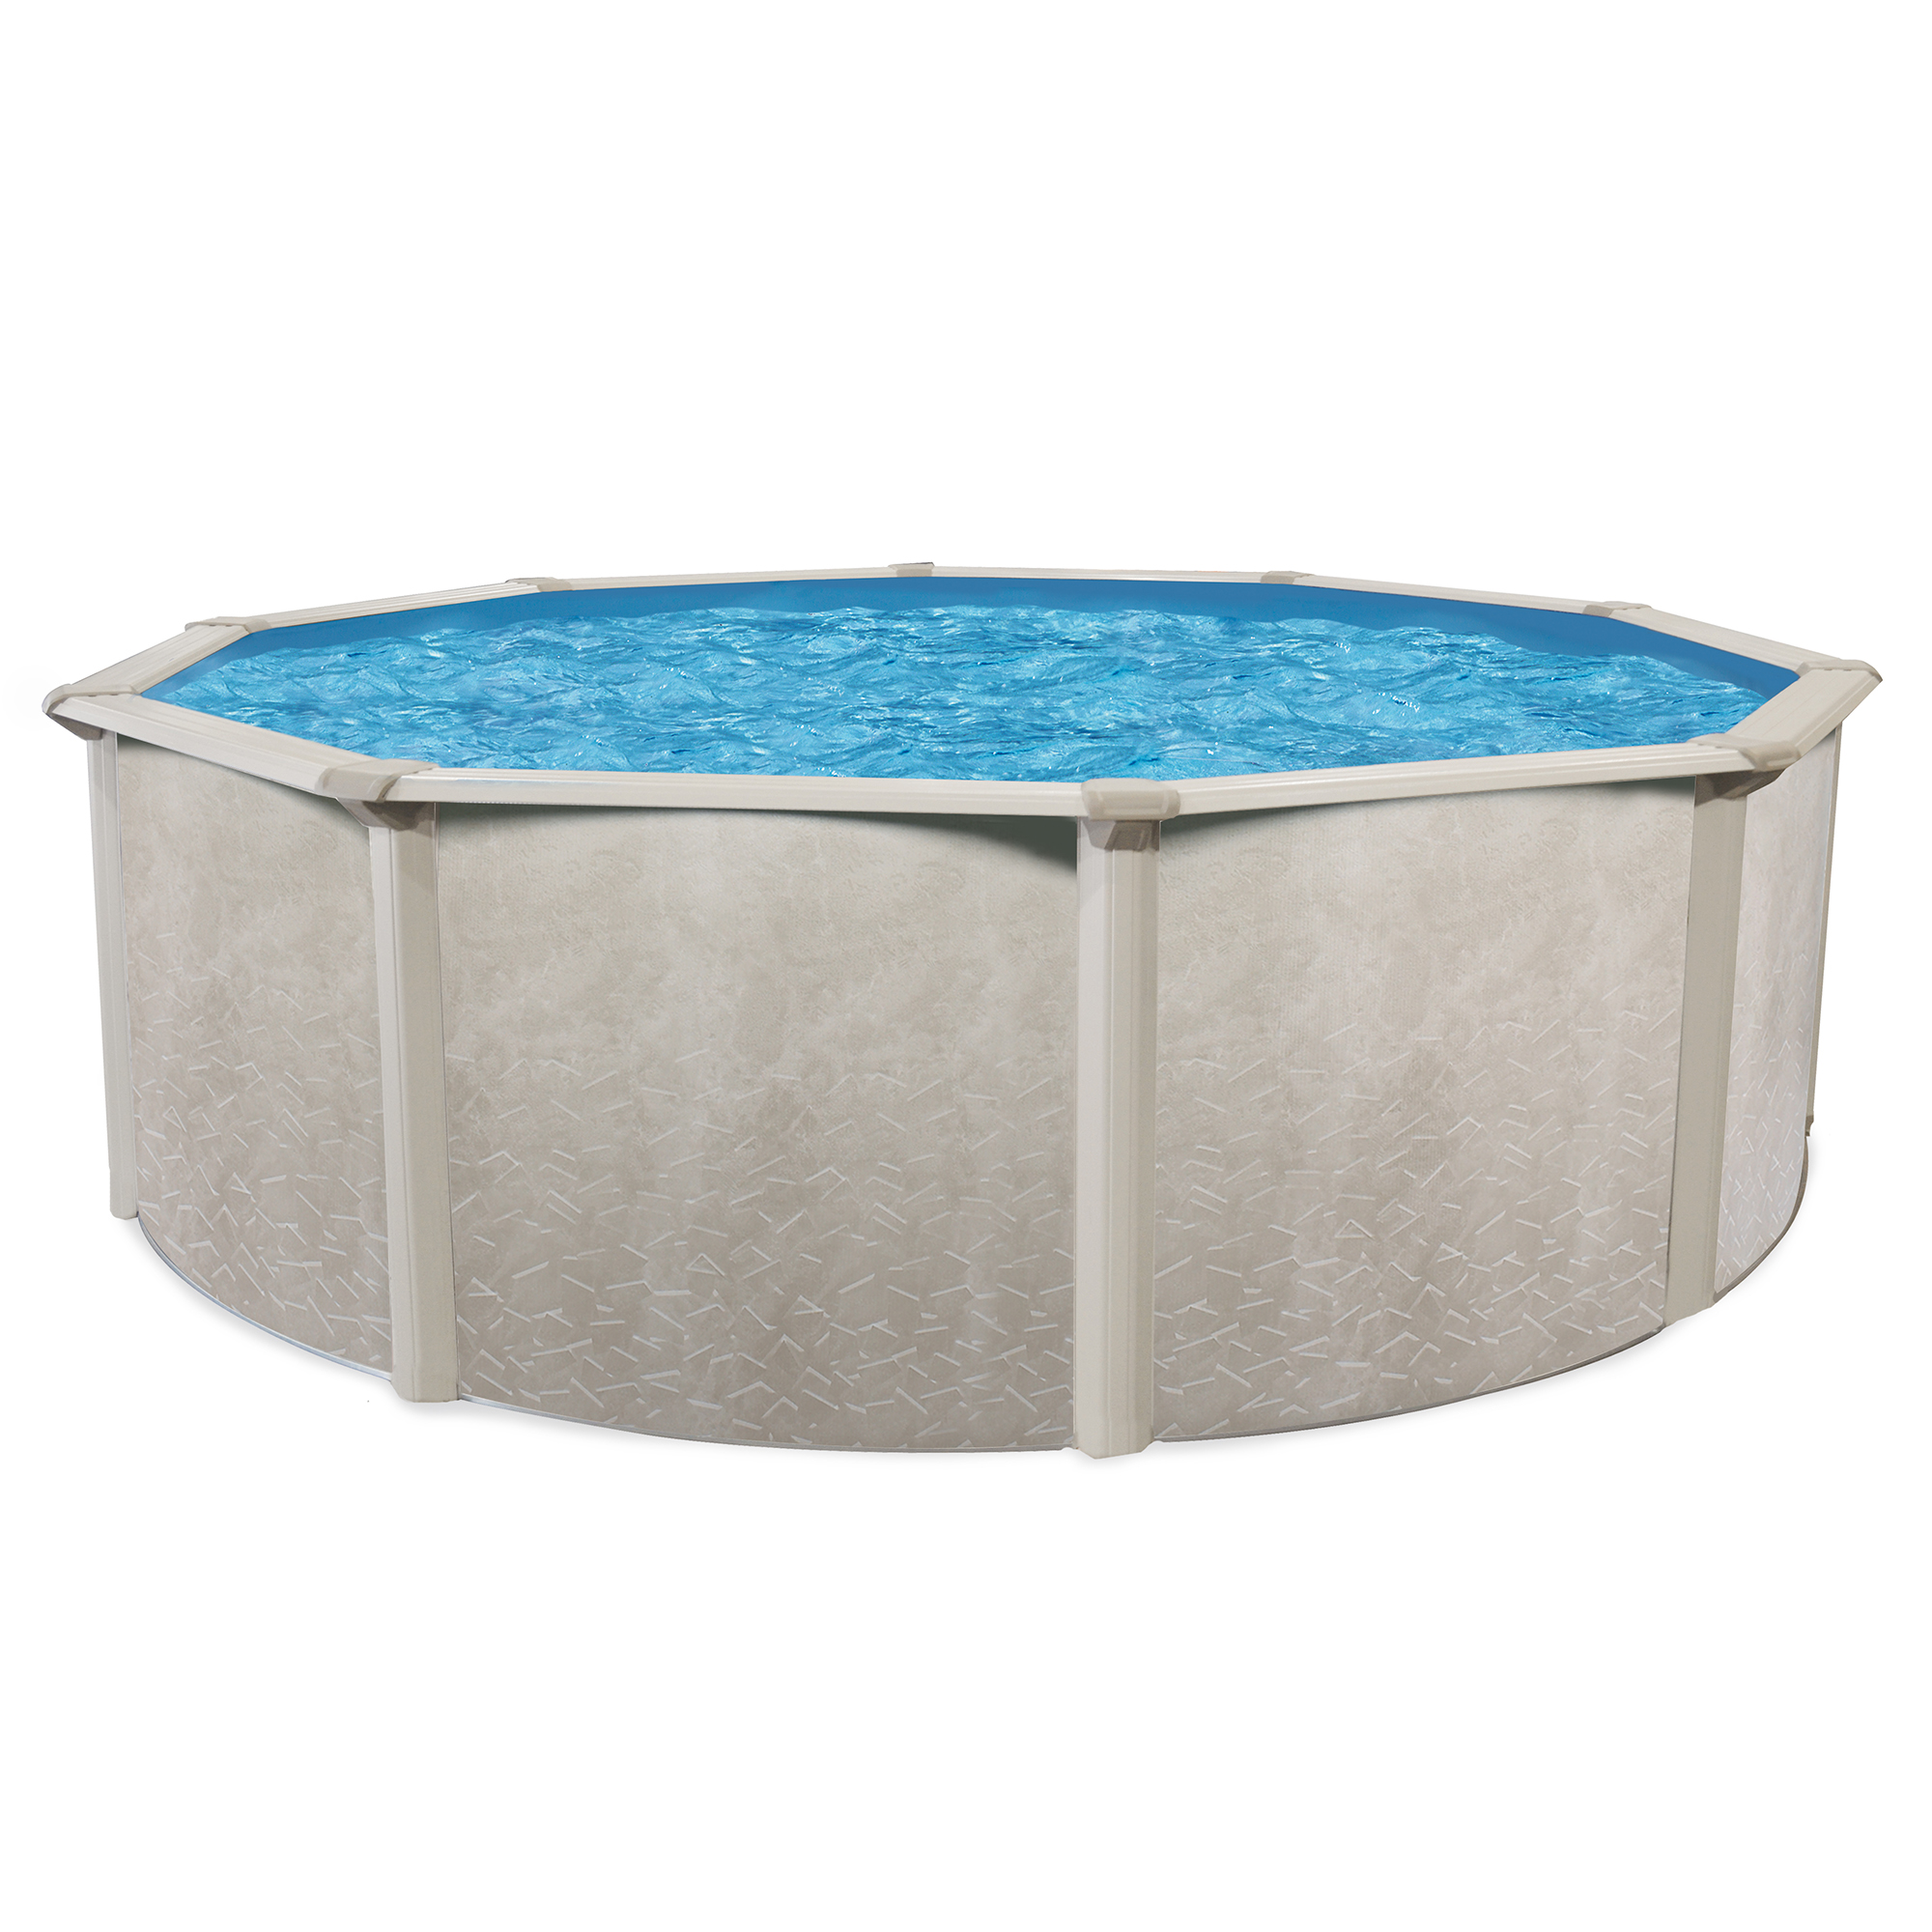 Phoenix 15 39 x 52 frame above ground outdoor swimming pool for Above ground pool kits